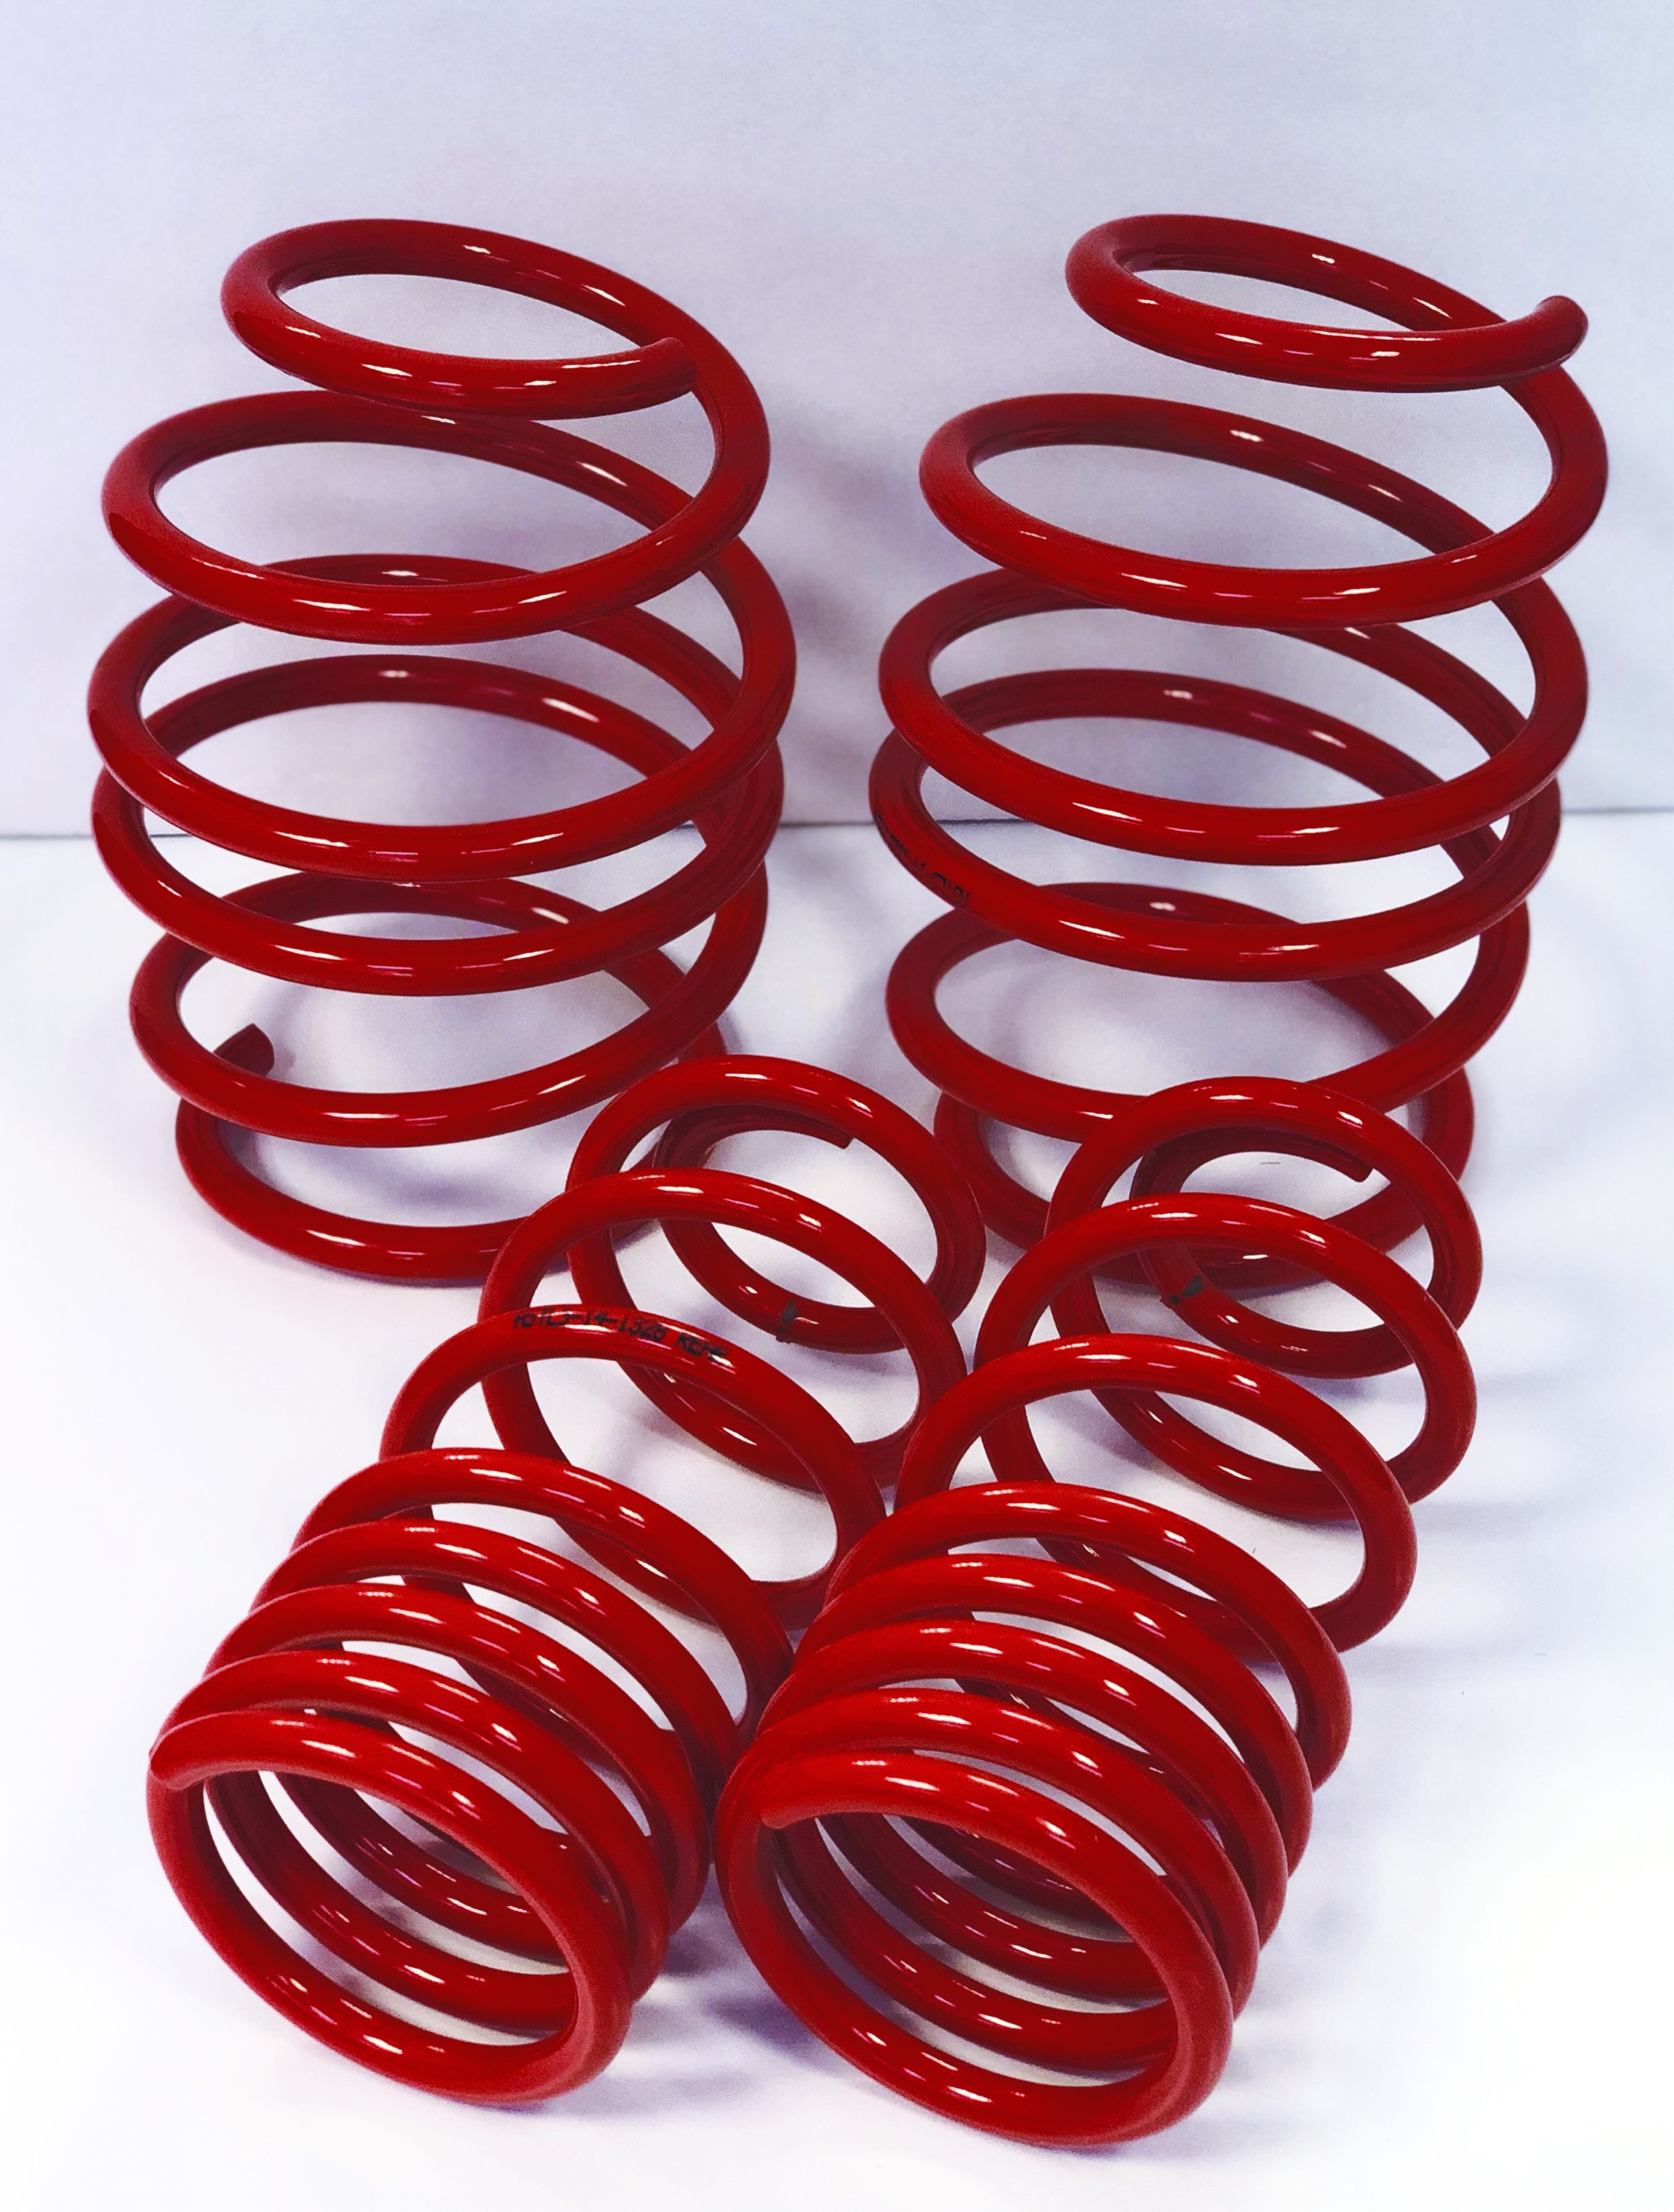 Seat LEON AST Suspension Lowering Springs 30/25